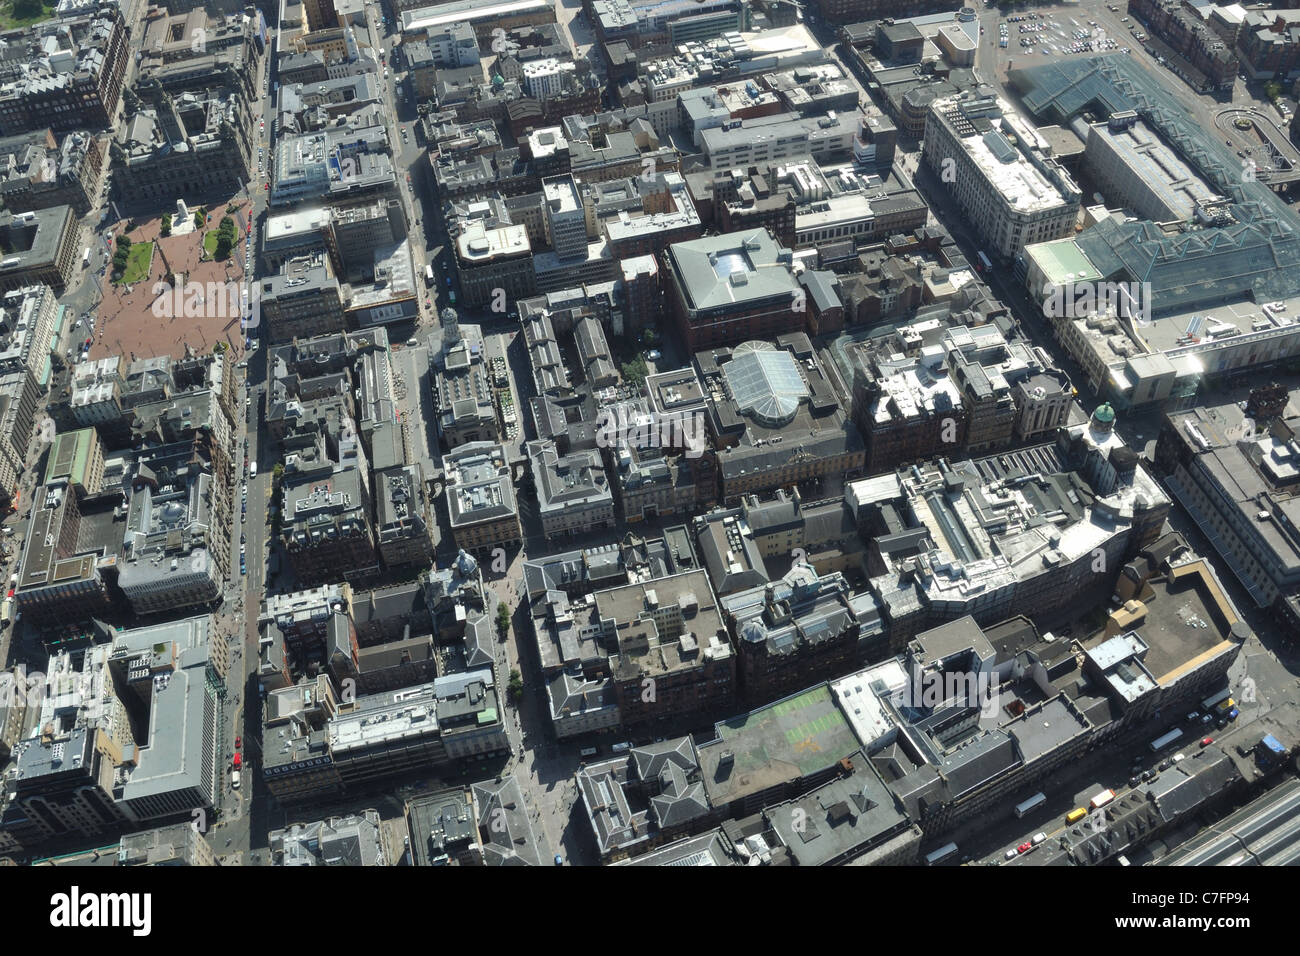 Glasgow City Centre from the air - Stock Image